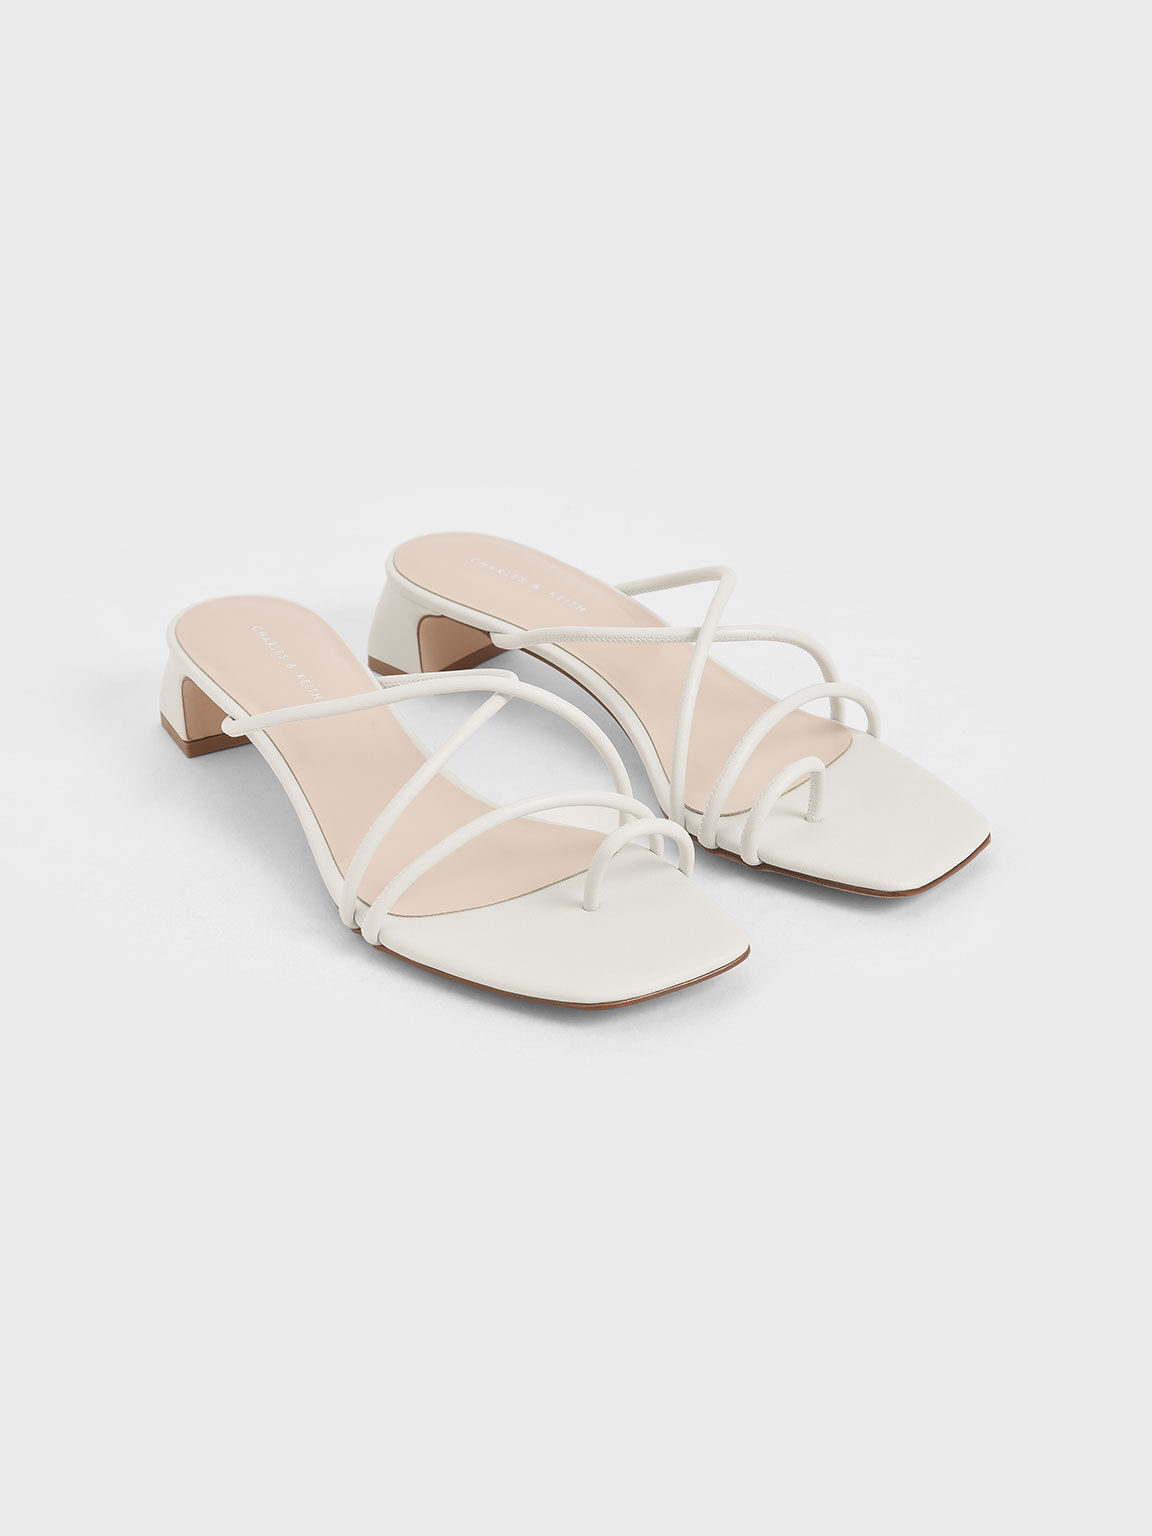 Strappy Toe Ring Sandals, White, hi-res